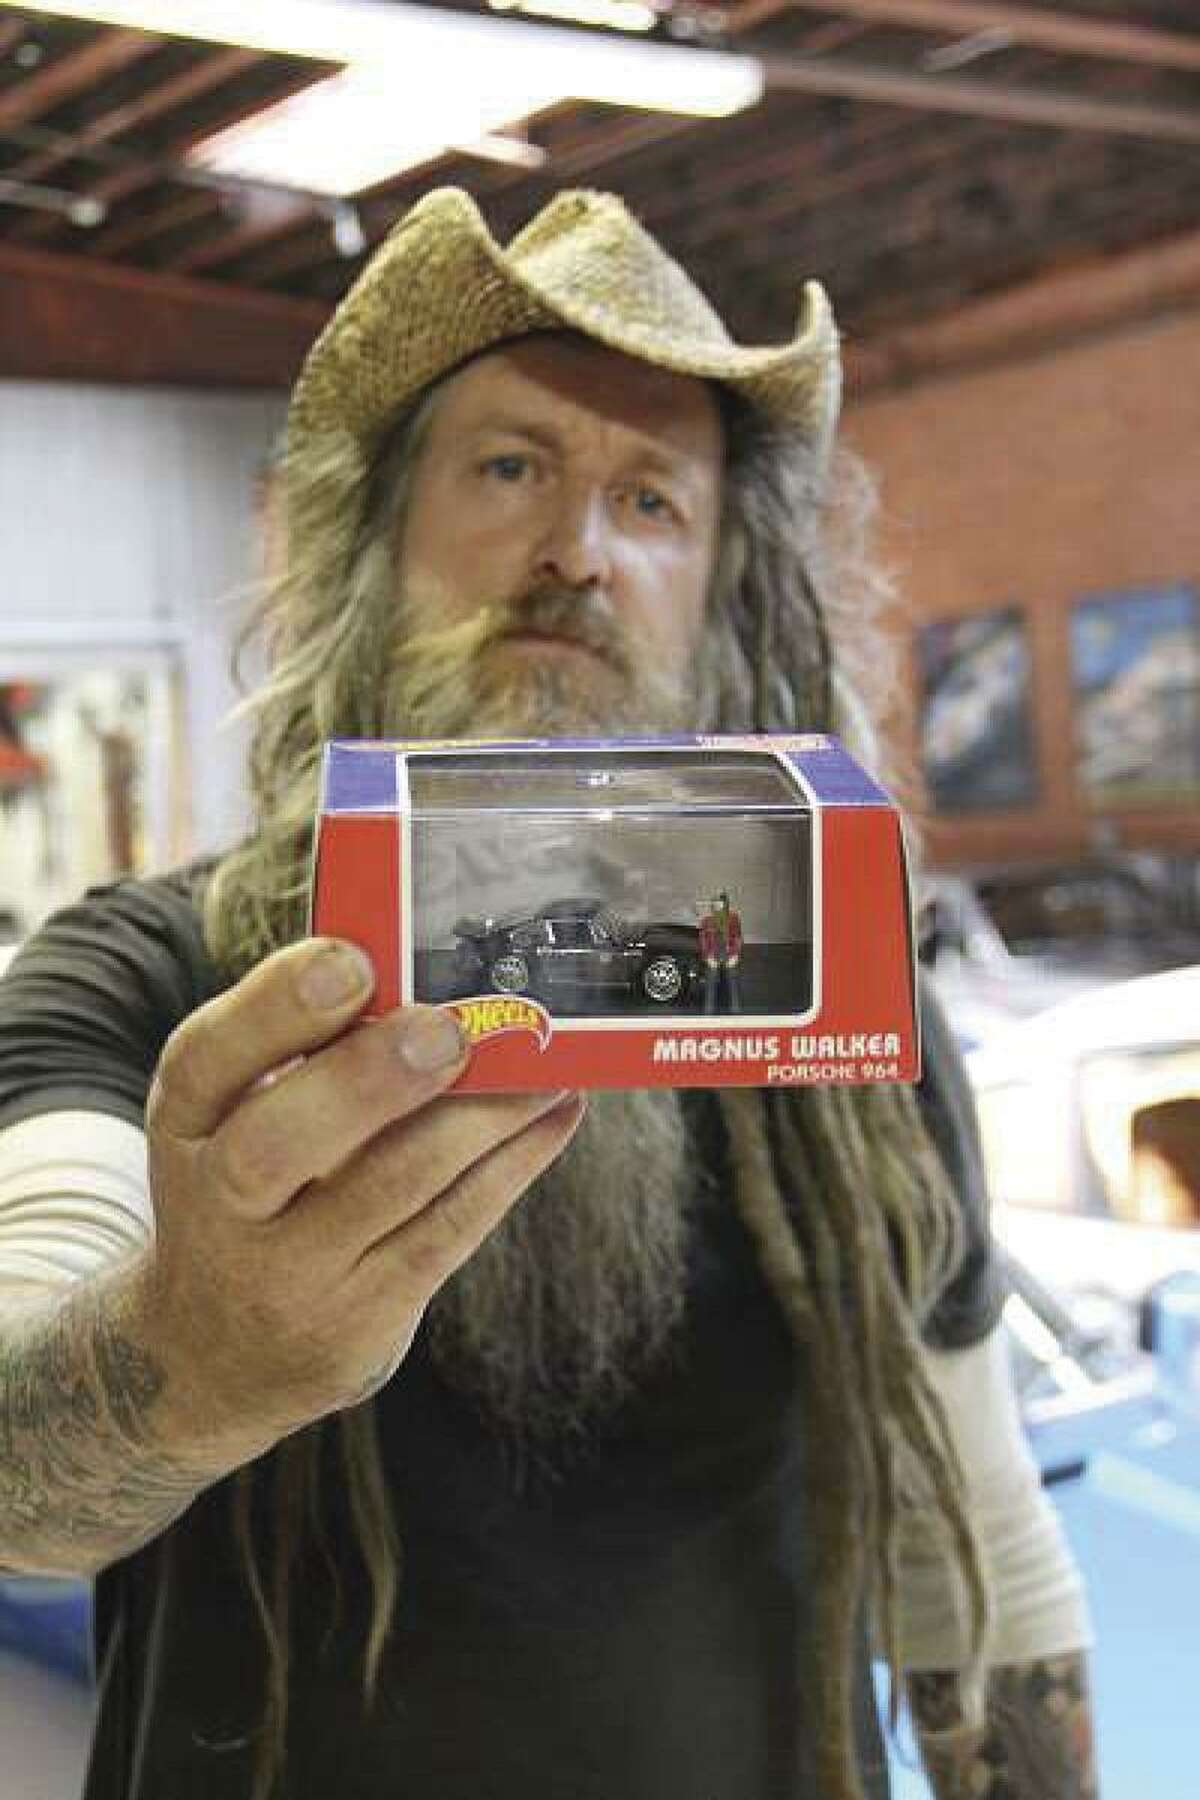 Magnus Walker, one of the most prominent personalities in the car world, holds his new specialty edition Hot Wheel with figurine. (Photo by Heidi Van Horne)